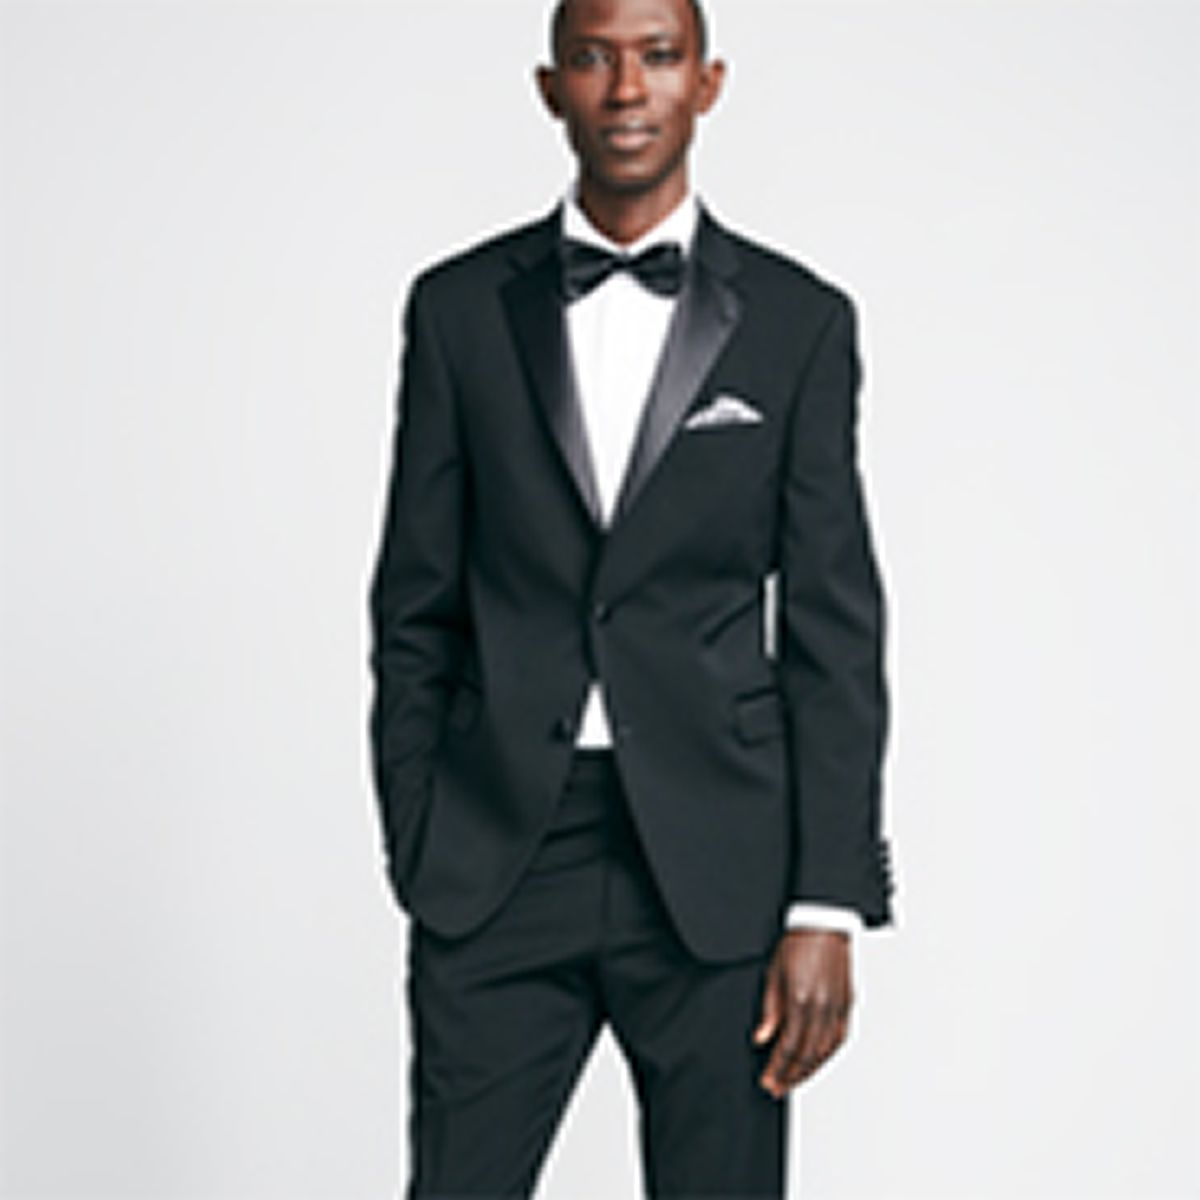 63aae6ff92e Prom Suits   Tuxedos for Men - Macy s